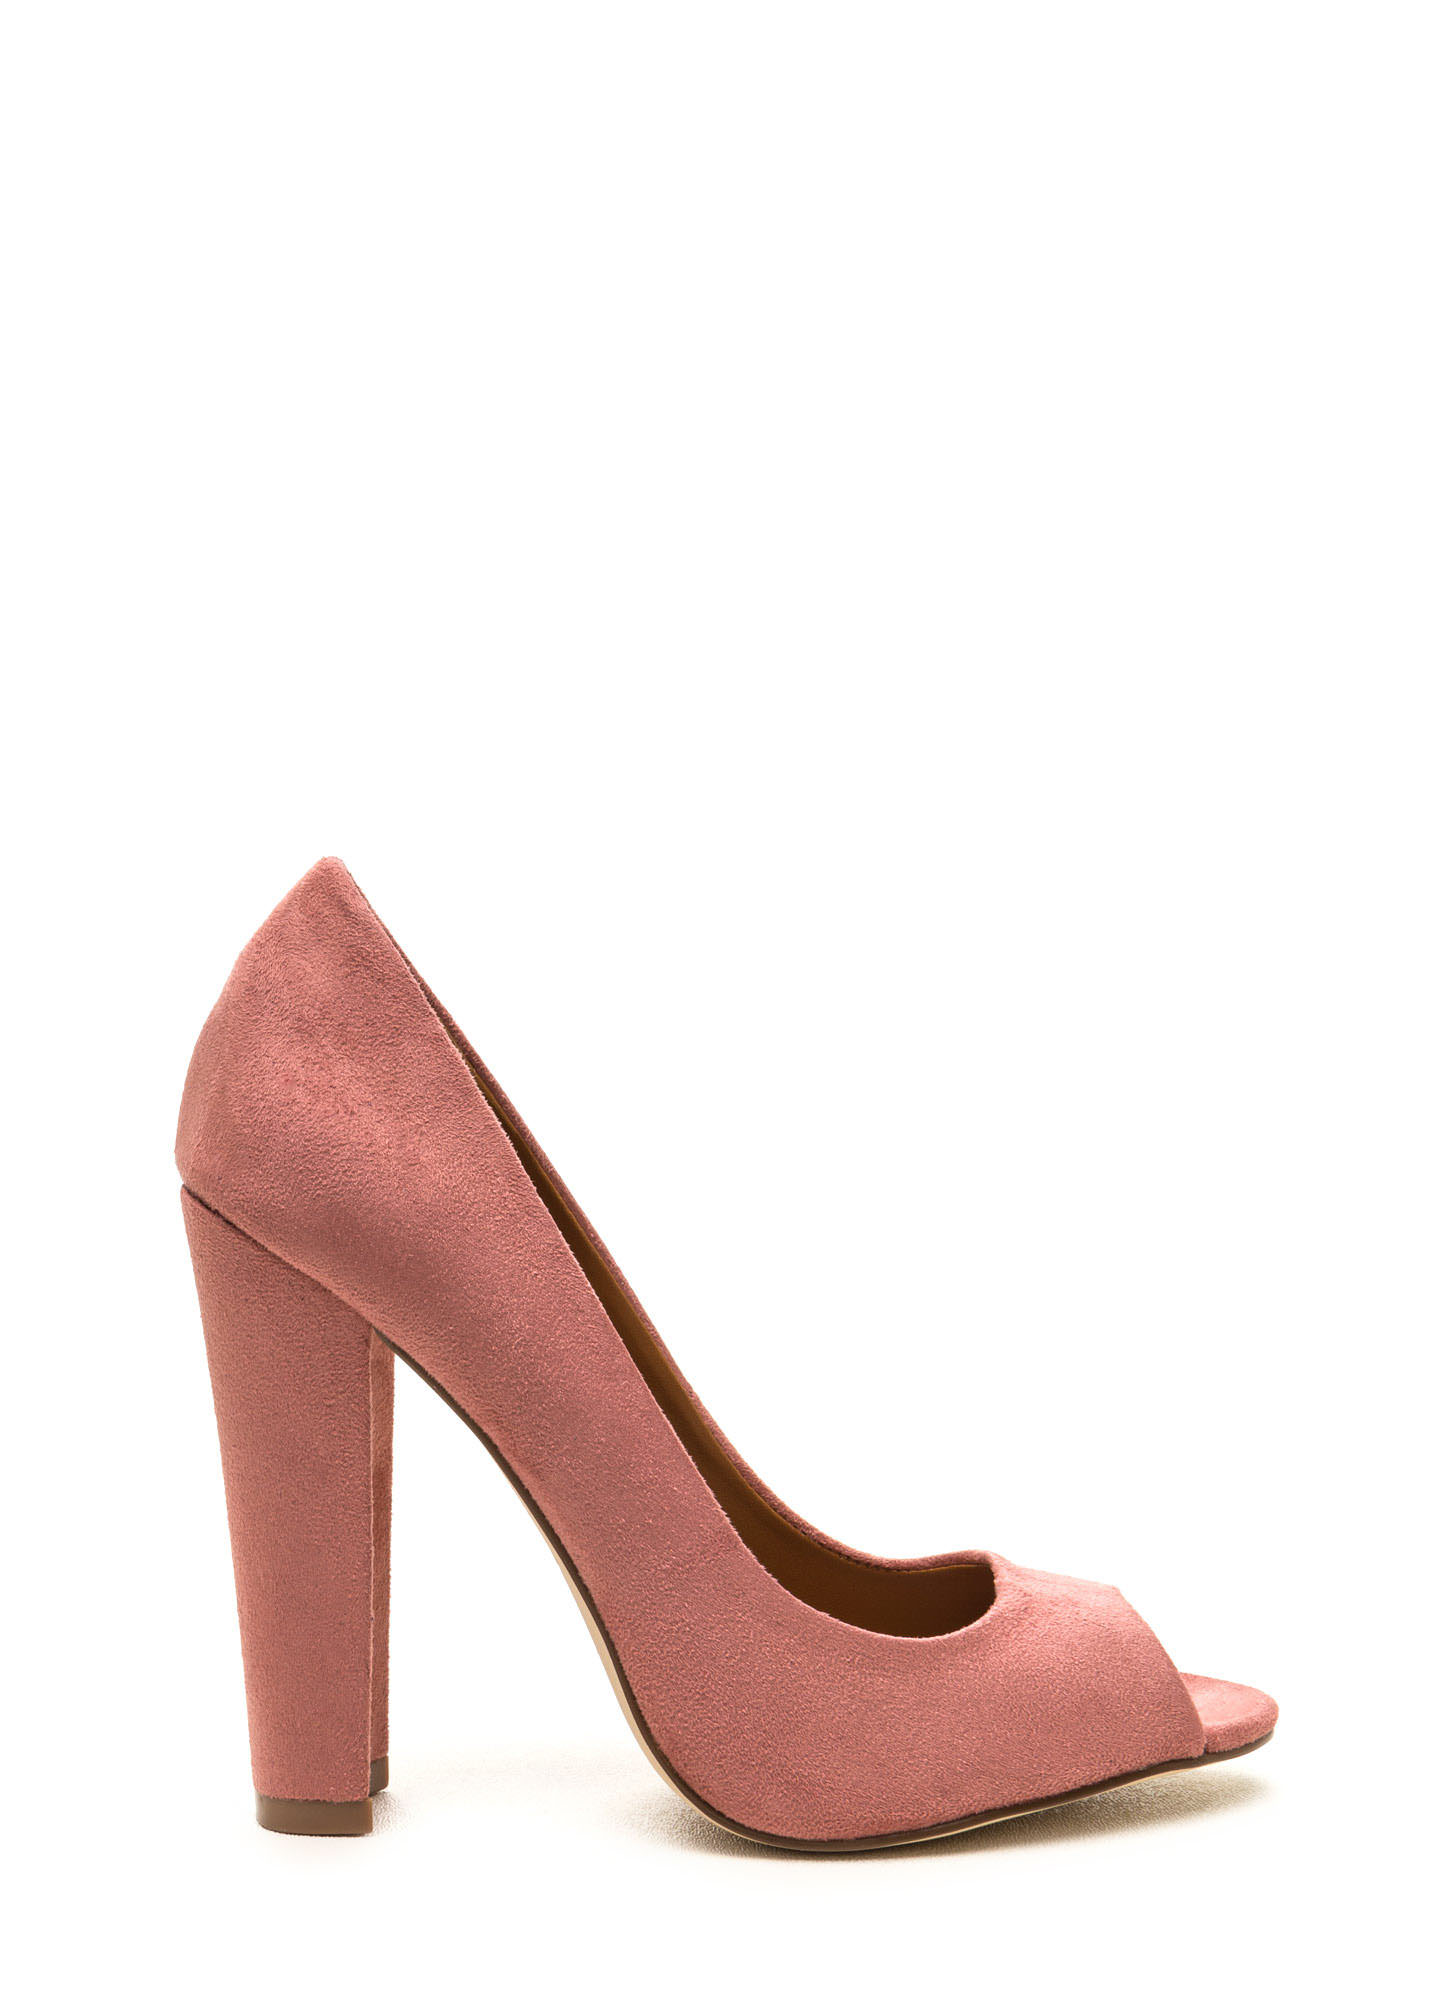 Bright Pink Peep Toe Heels - Is Heel